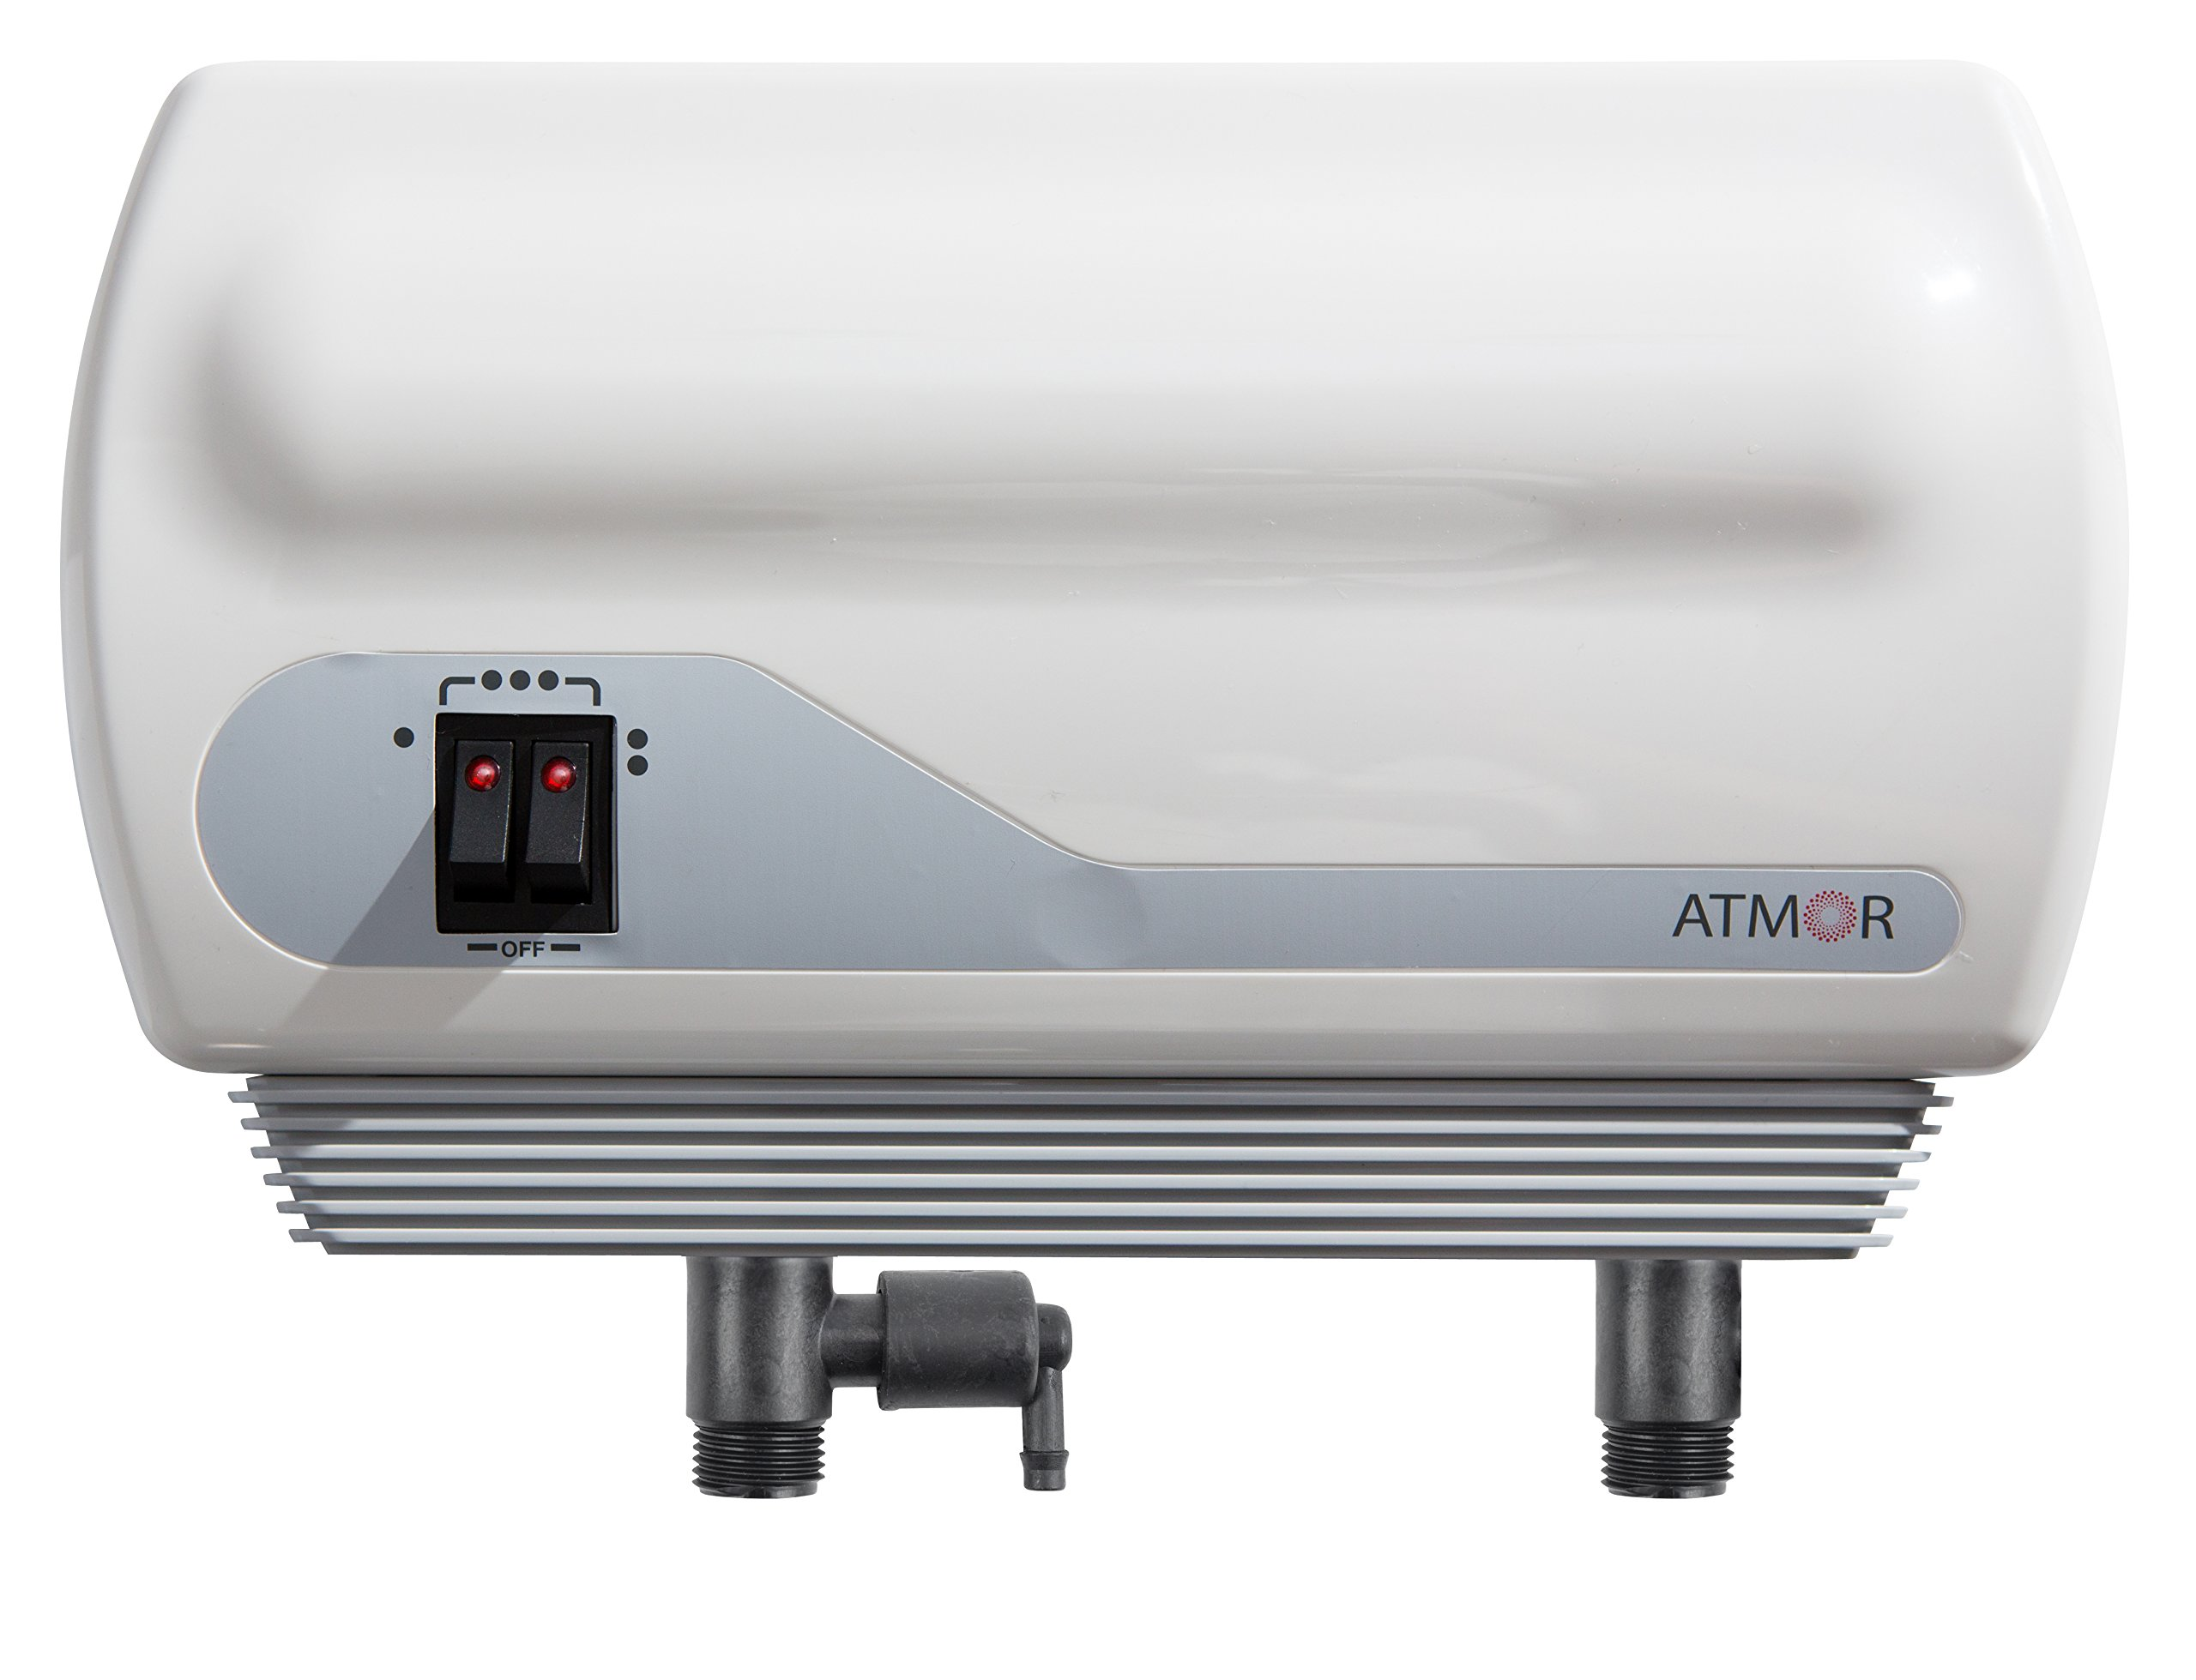 Atmor 13kw/240v, 2.25 GPM Tankless Water Heater Electric, Multiple Point-Of-Use Water Heater with Pressure Relief Device, AT-900-13 by Atmor